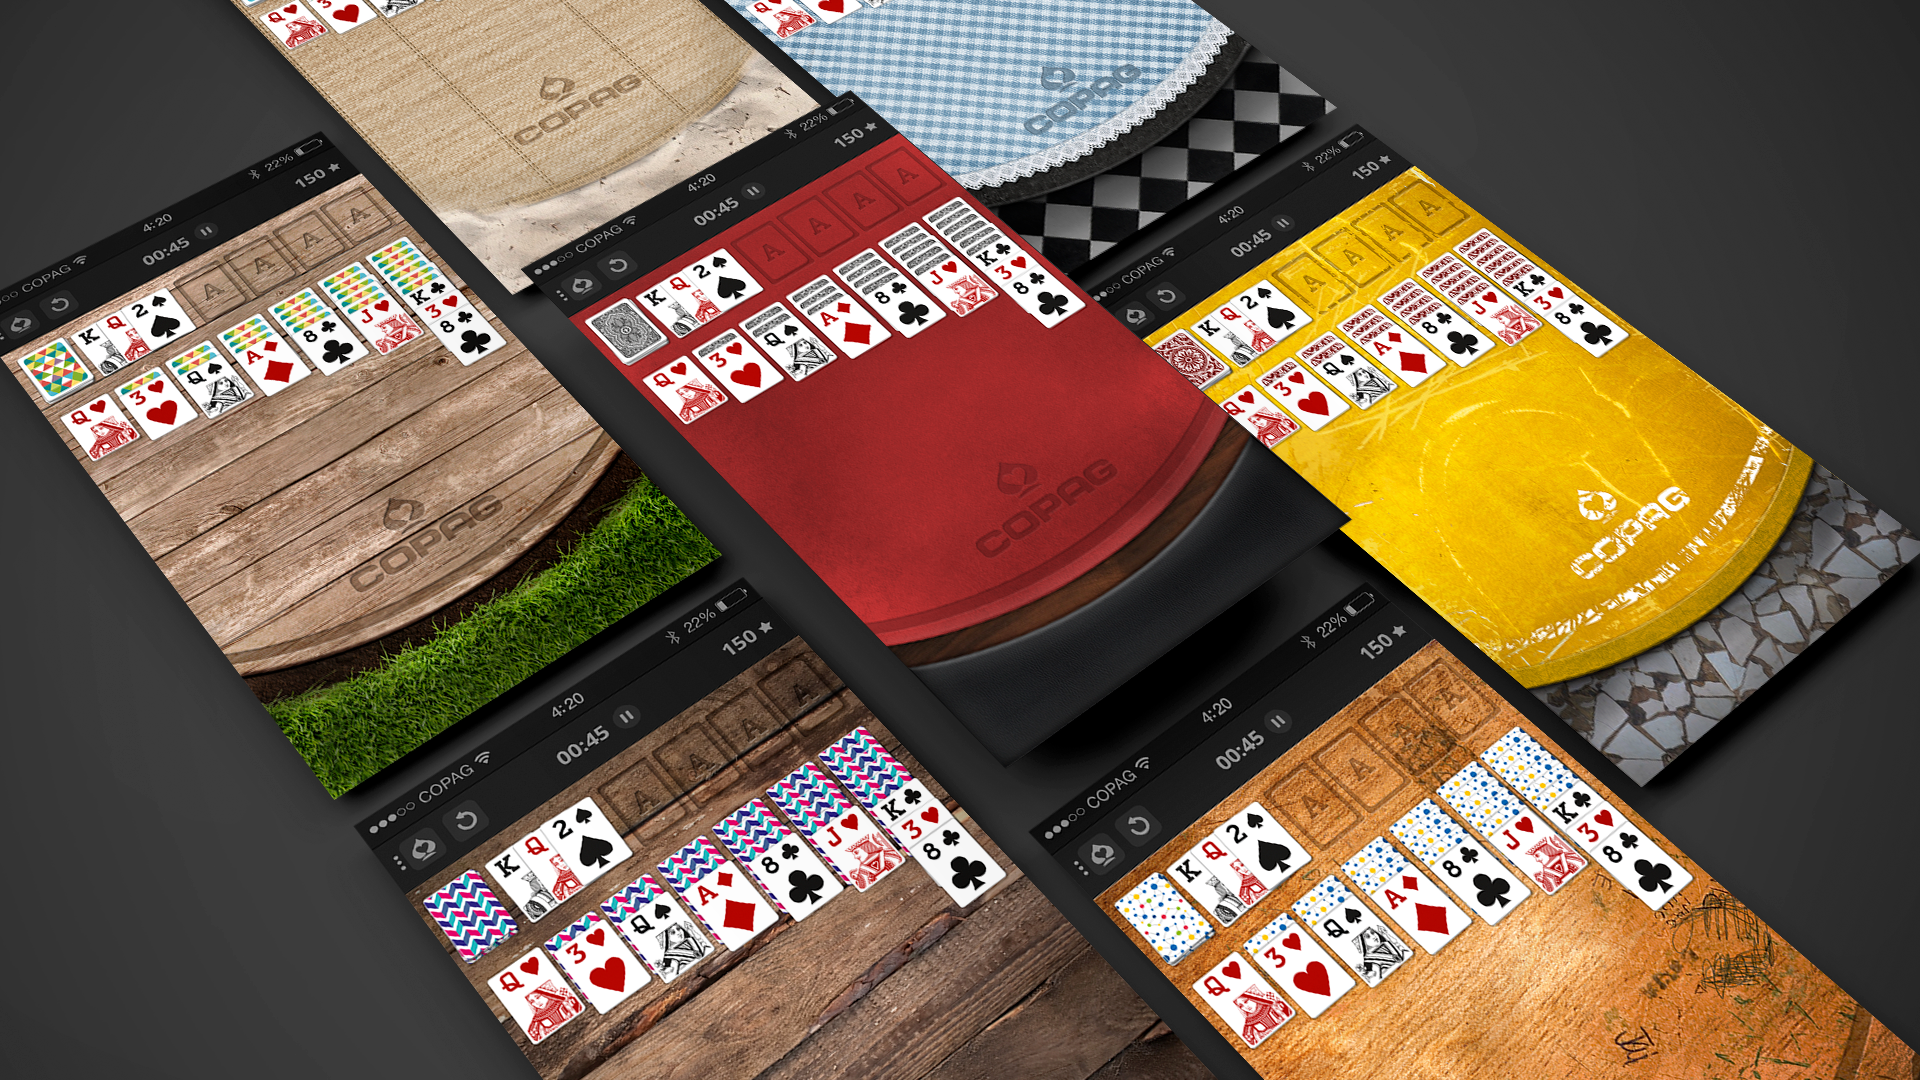 Different table skins to choose from